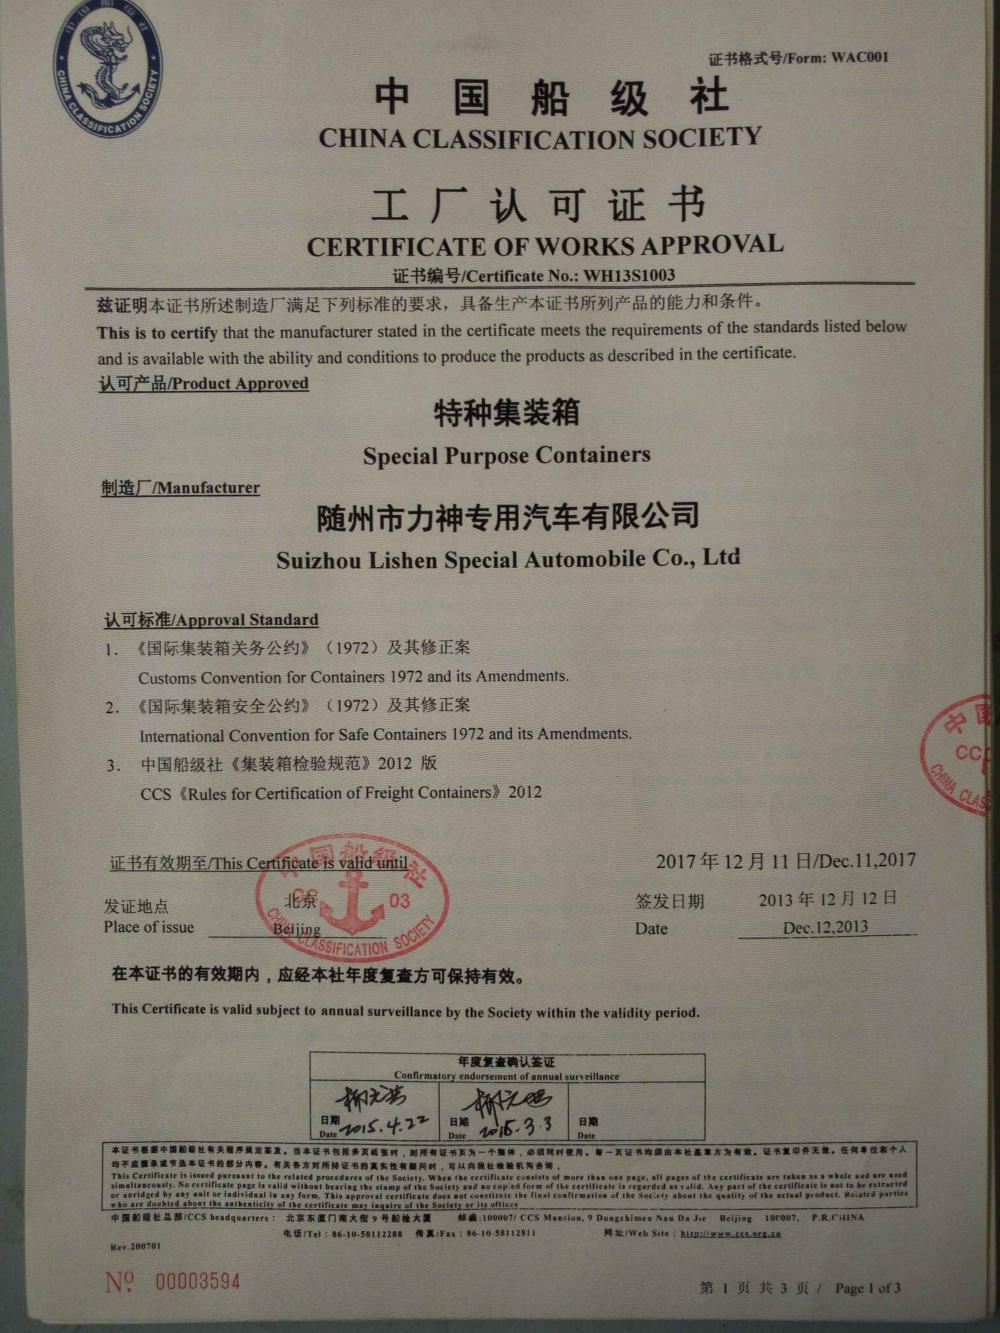 China Classification Society Certification